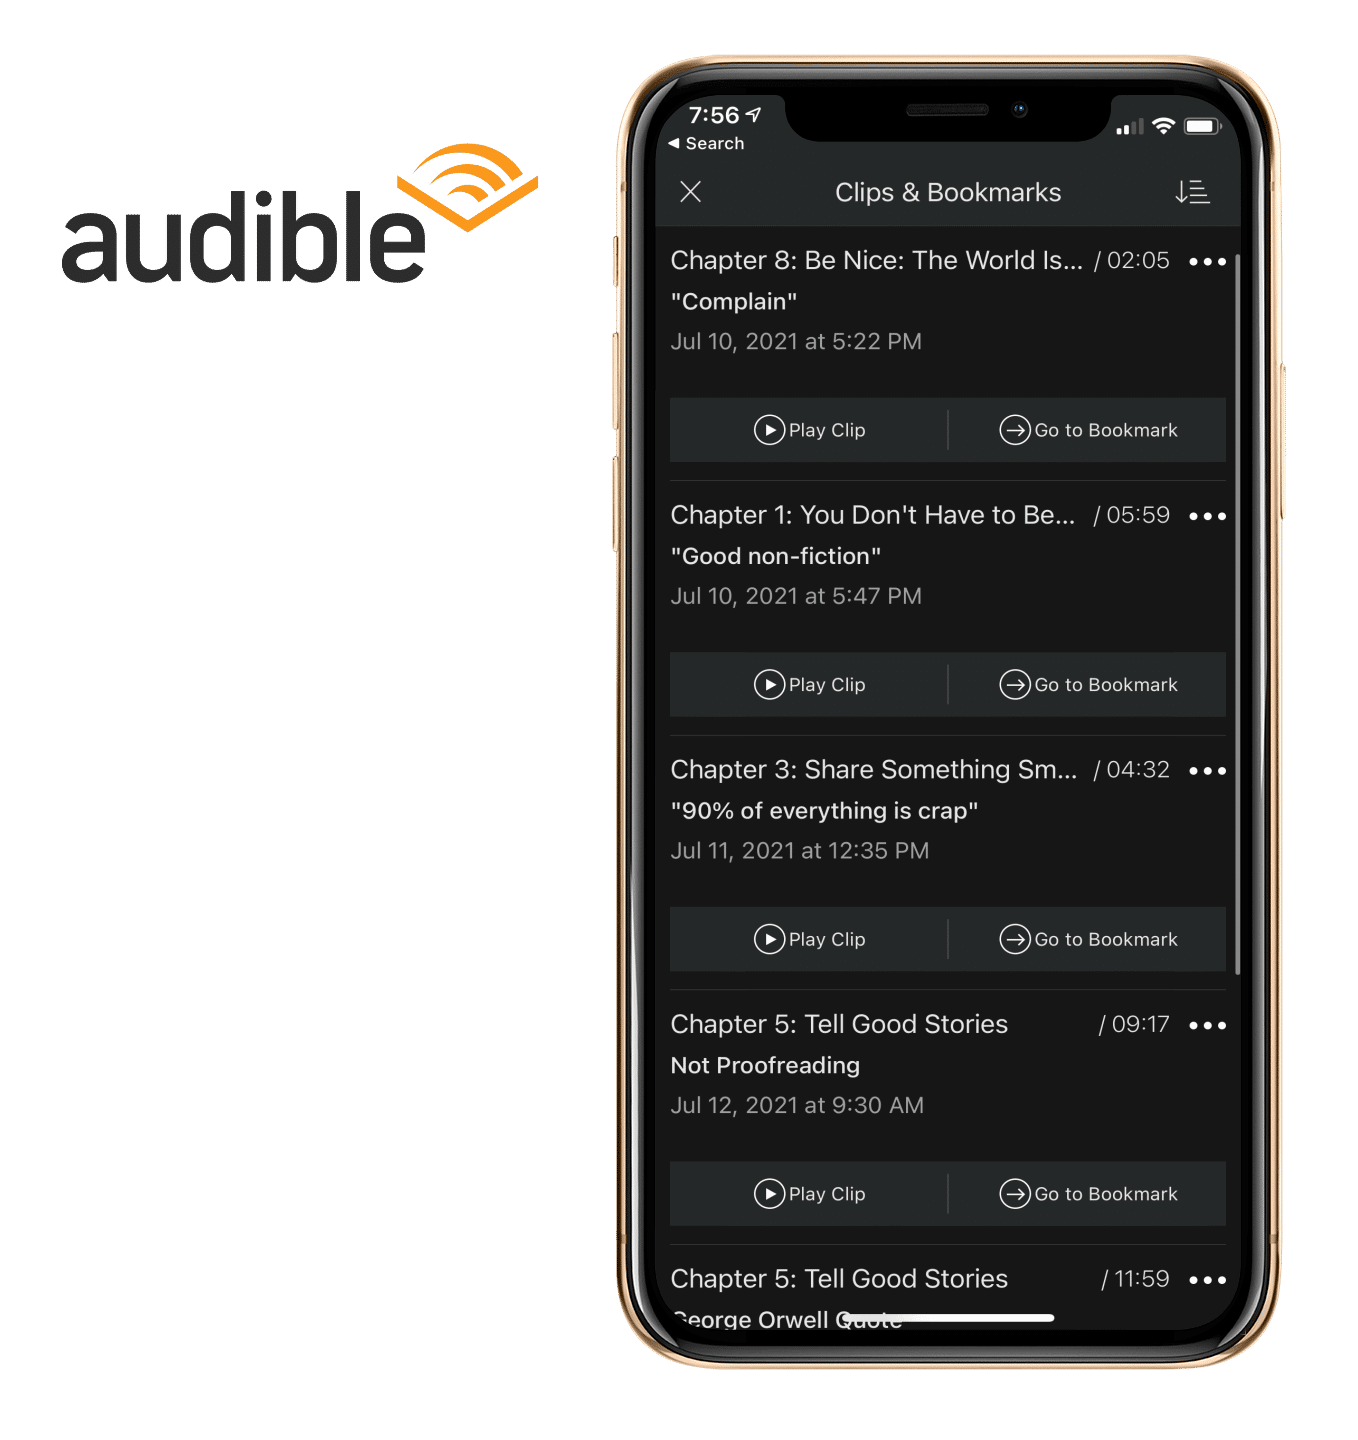 Audible clipping notes